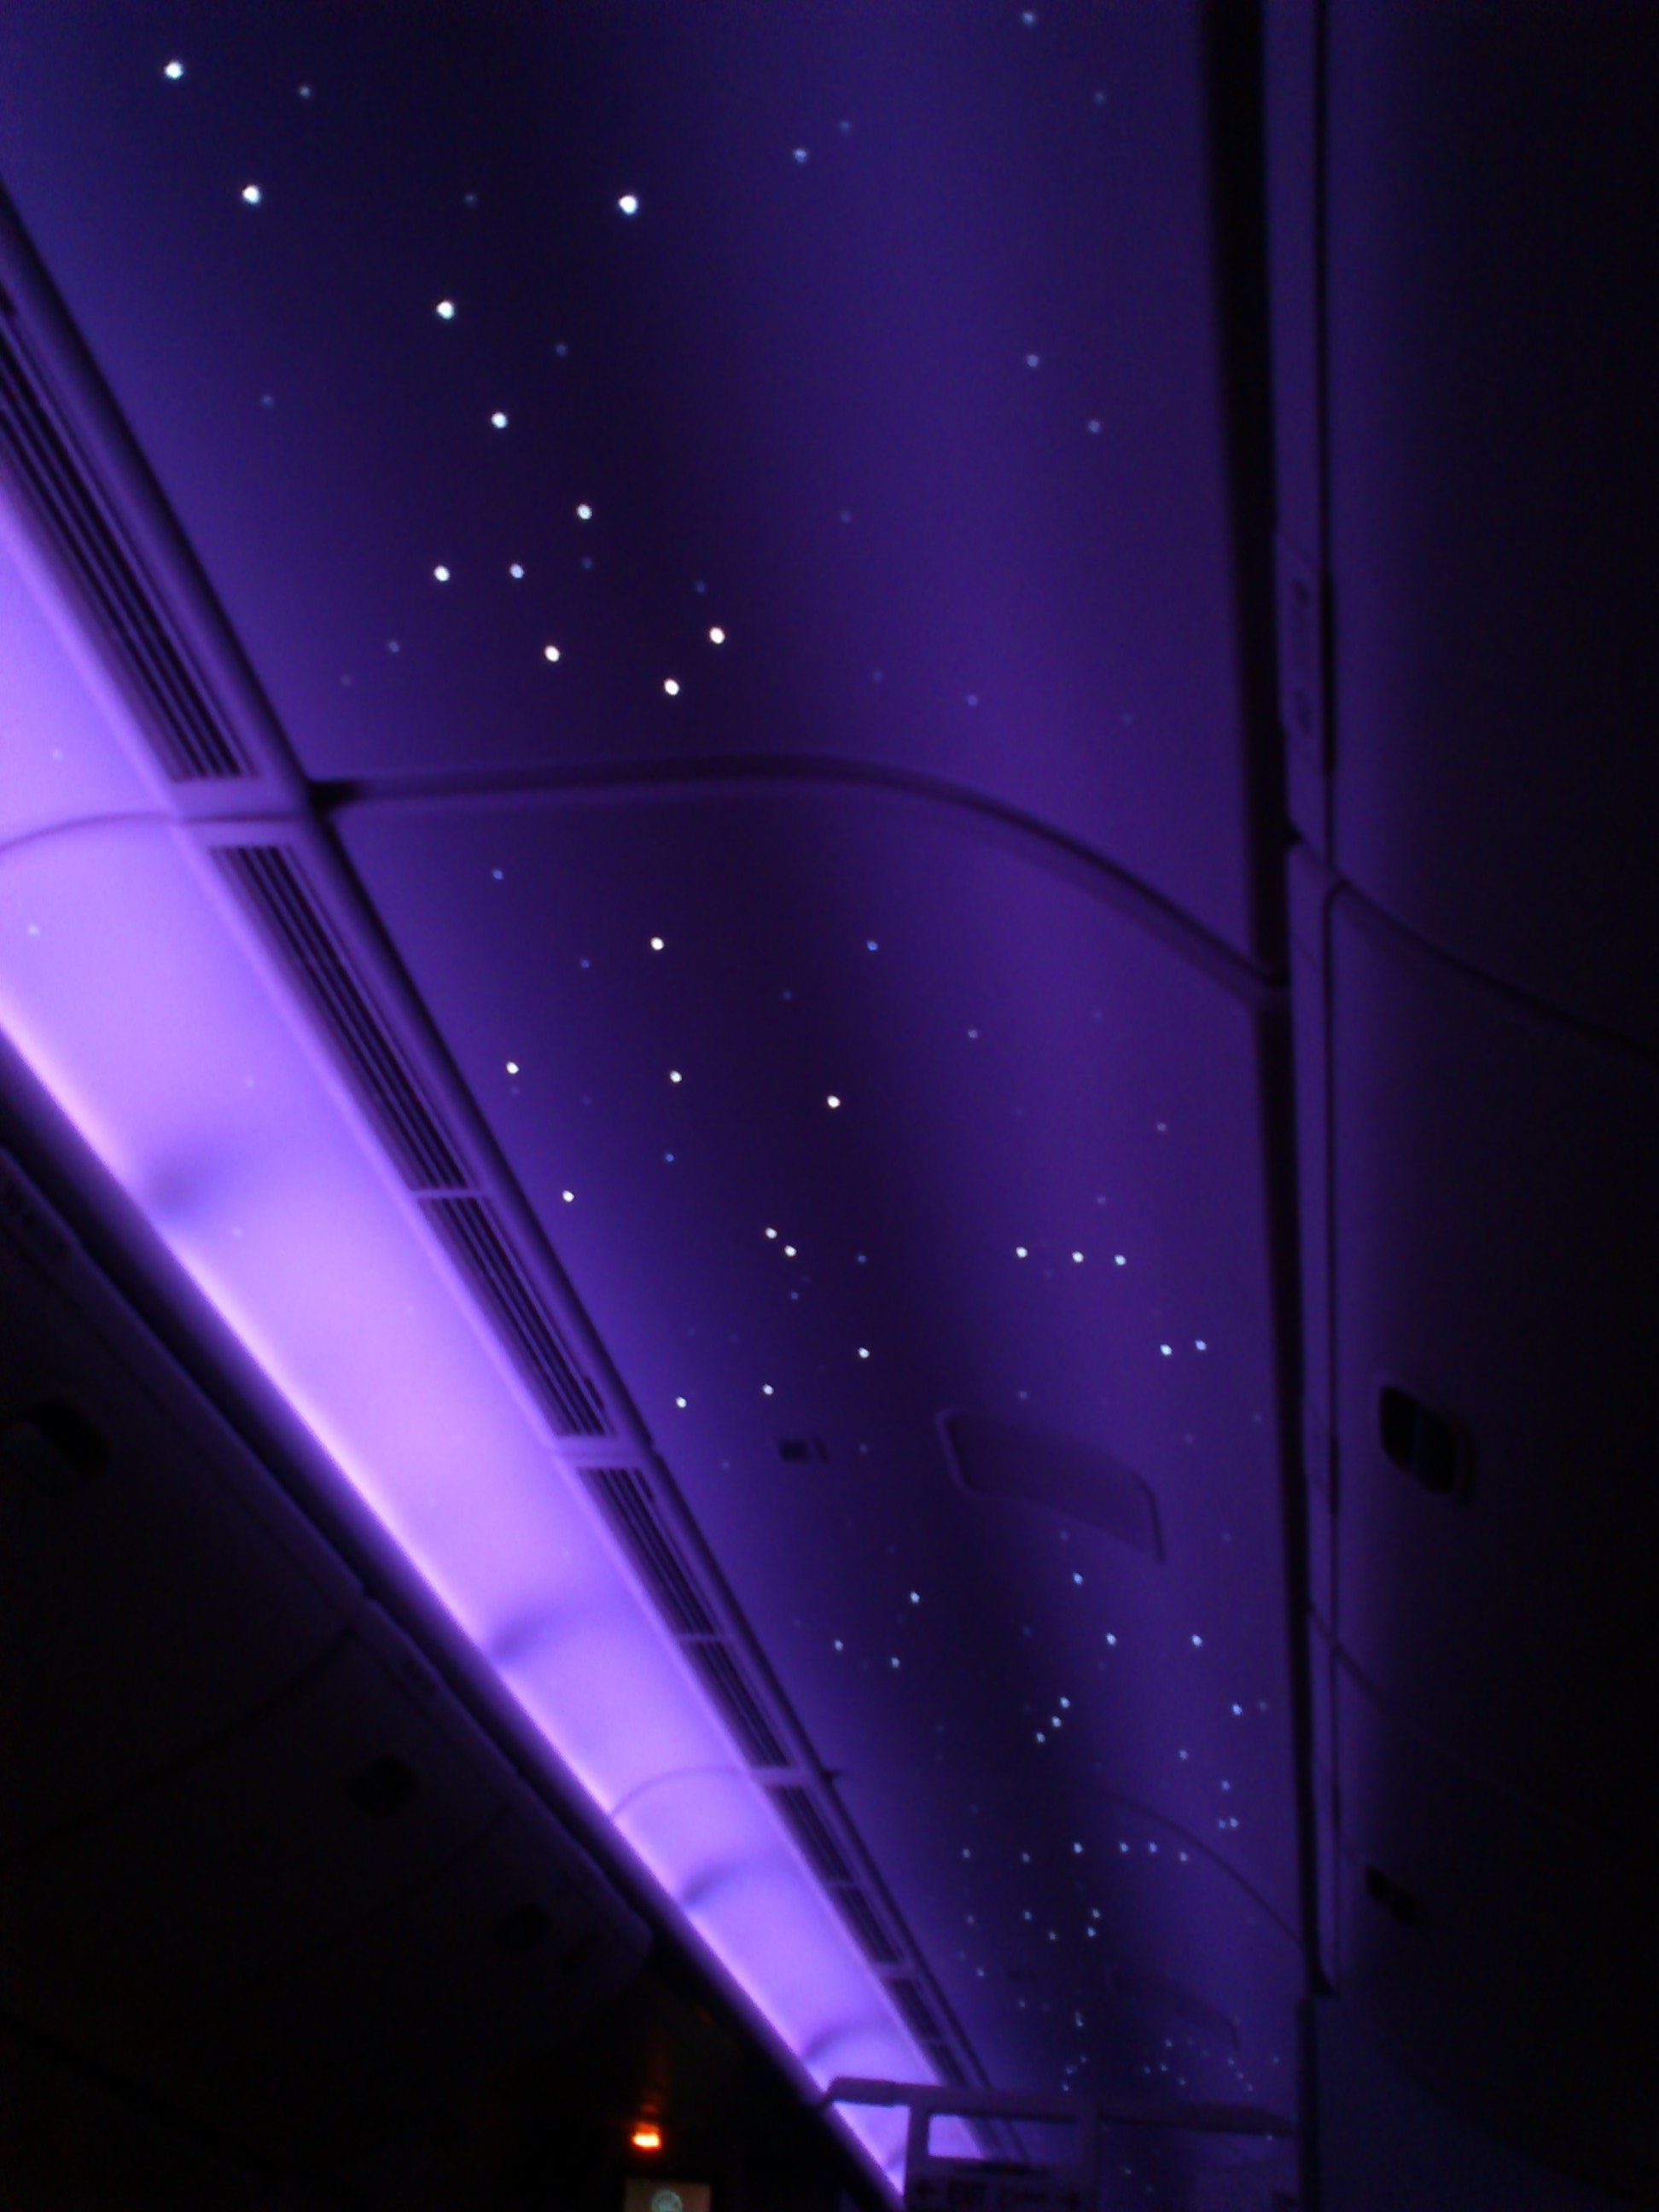 Starlight Lighting In The Ceiling Of Emirates Airlines